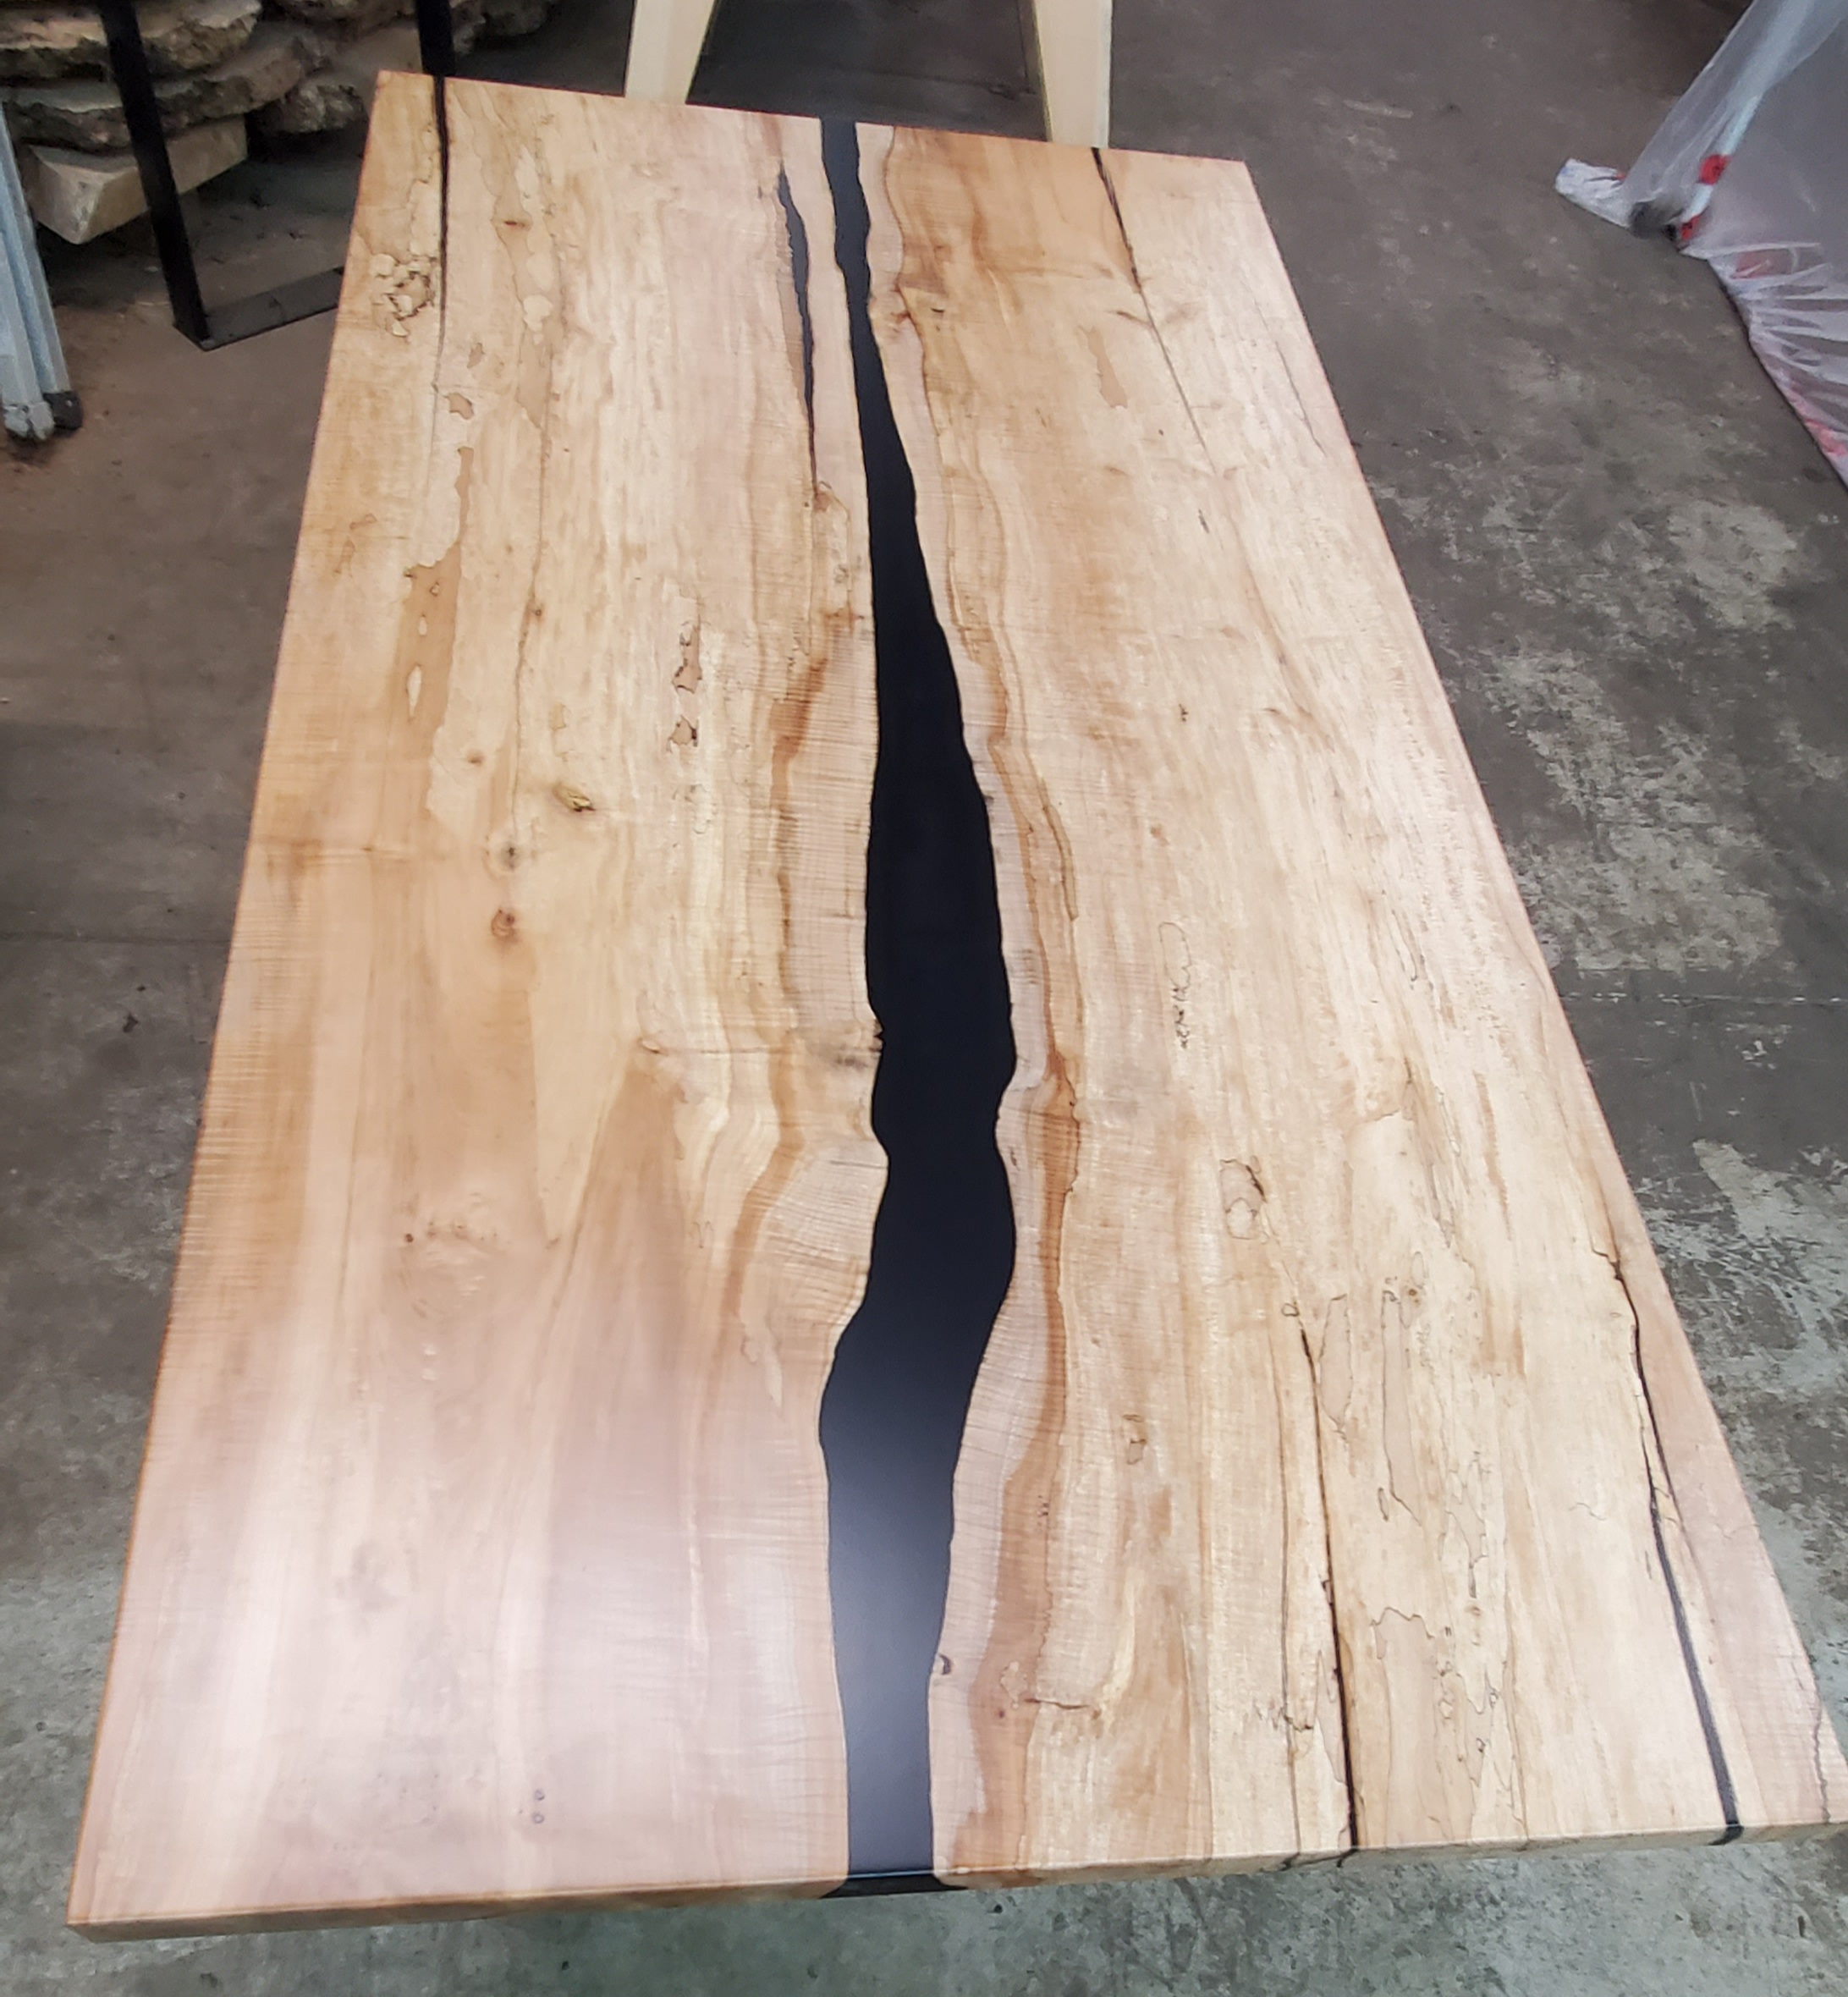 Spalted Maple Merge Riber Table